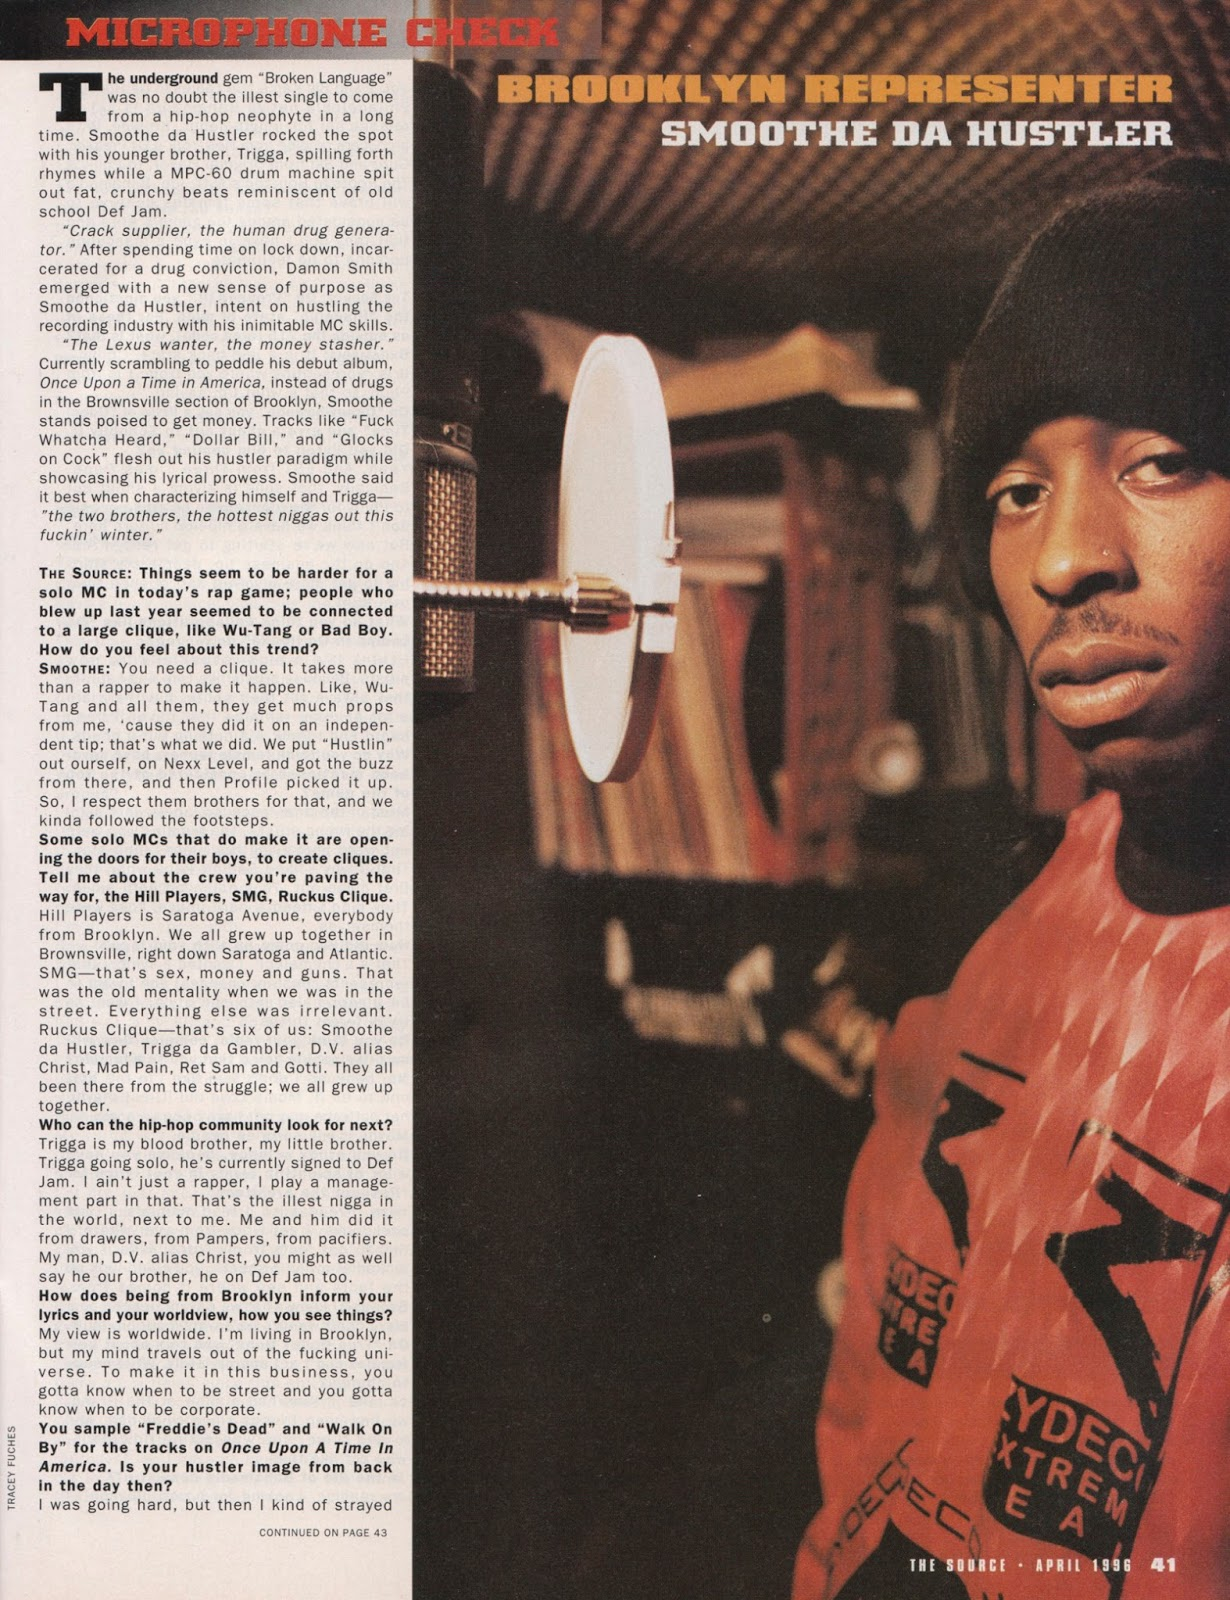 Smoothe Da Hustler Microphone Check The Source 1996